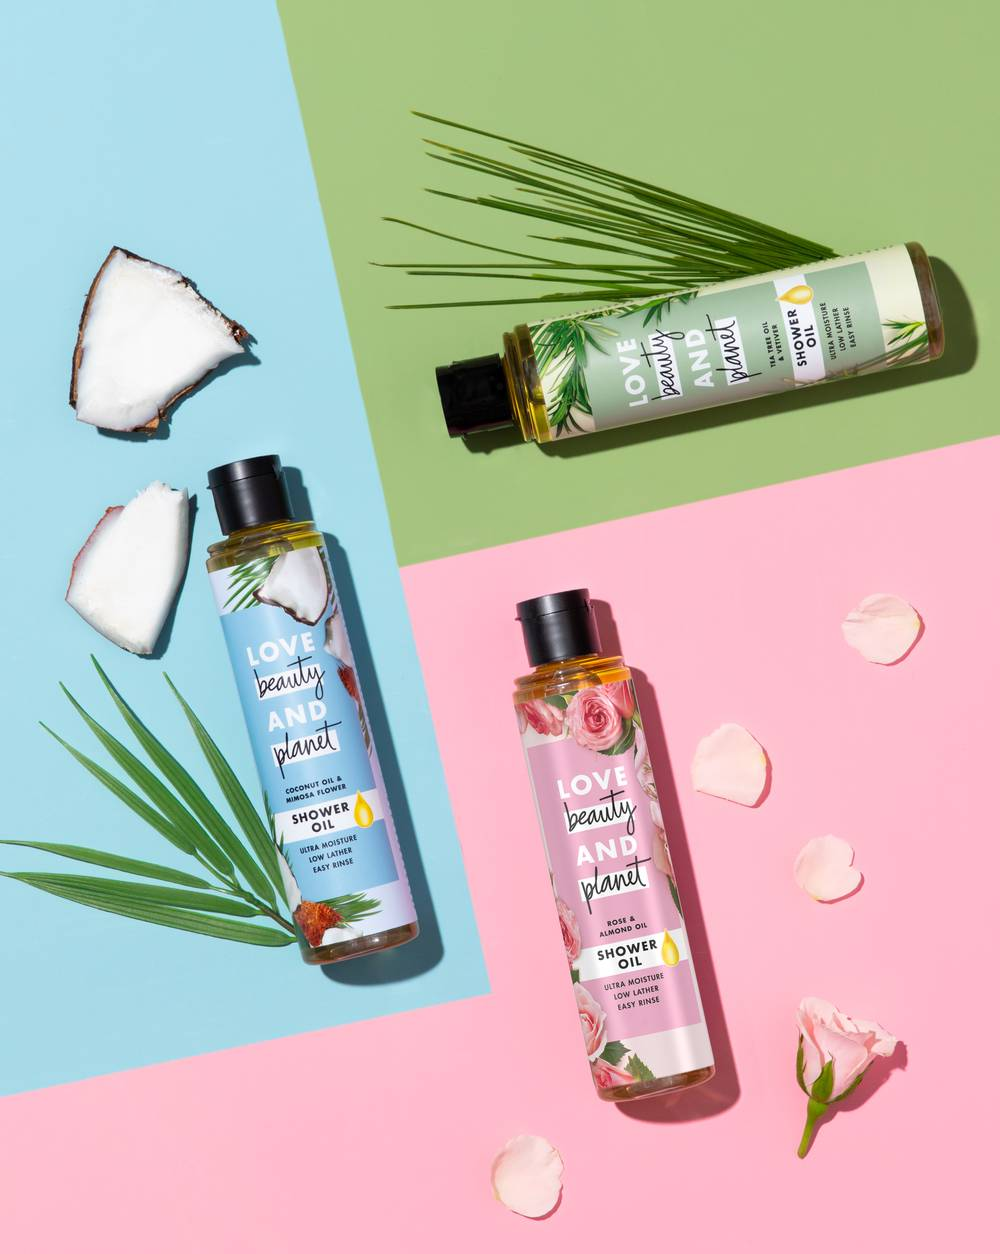 Love Beauty and Planet Shower Oil